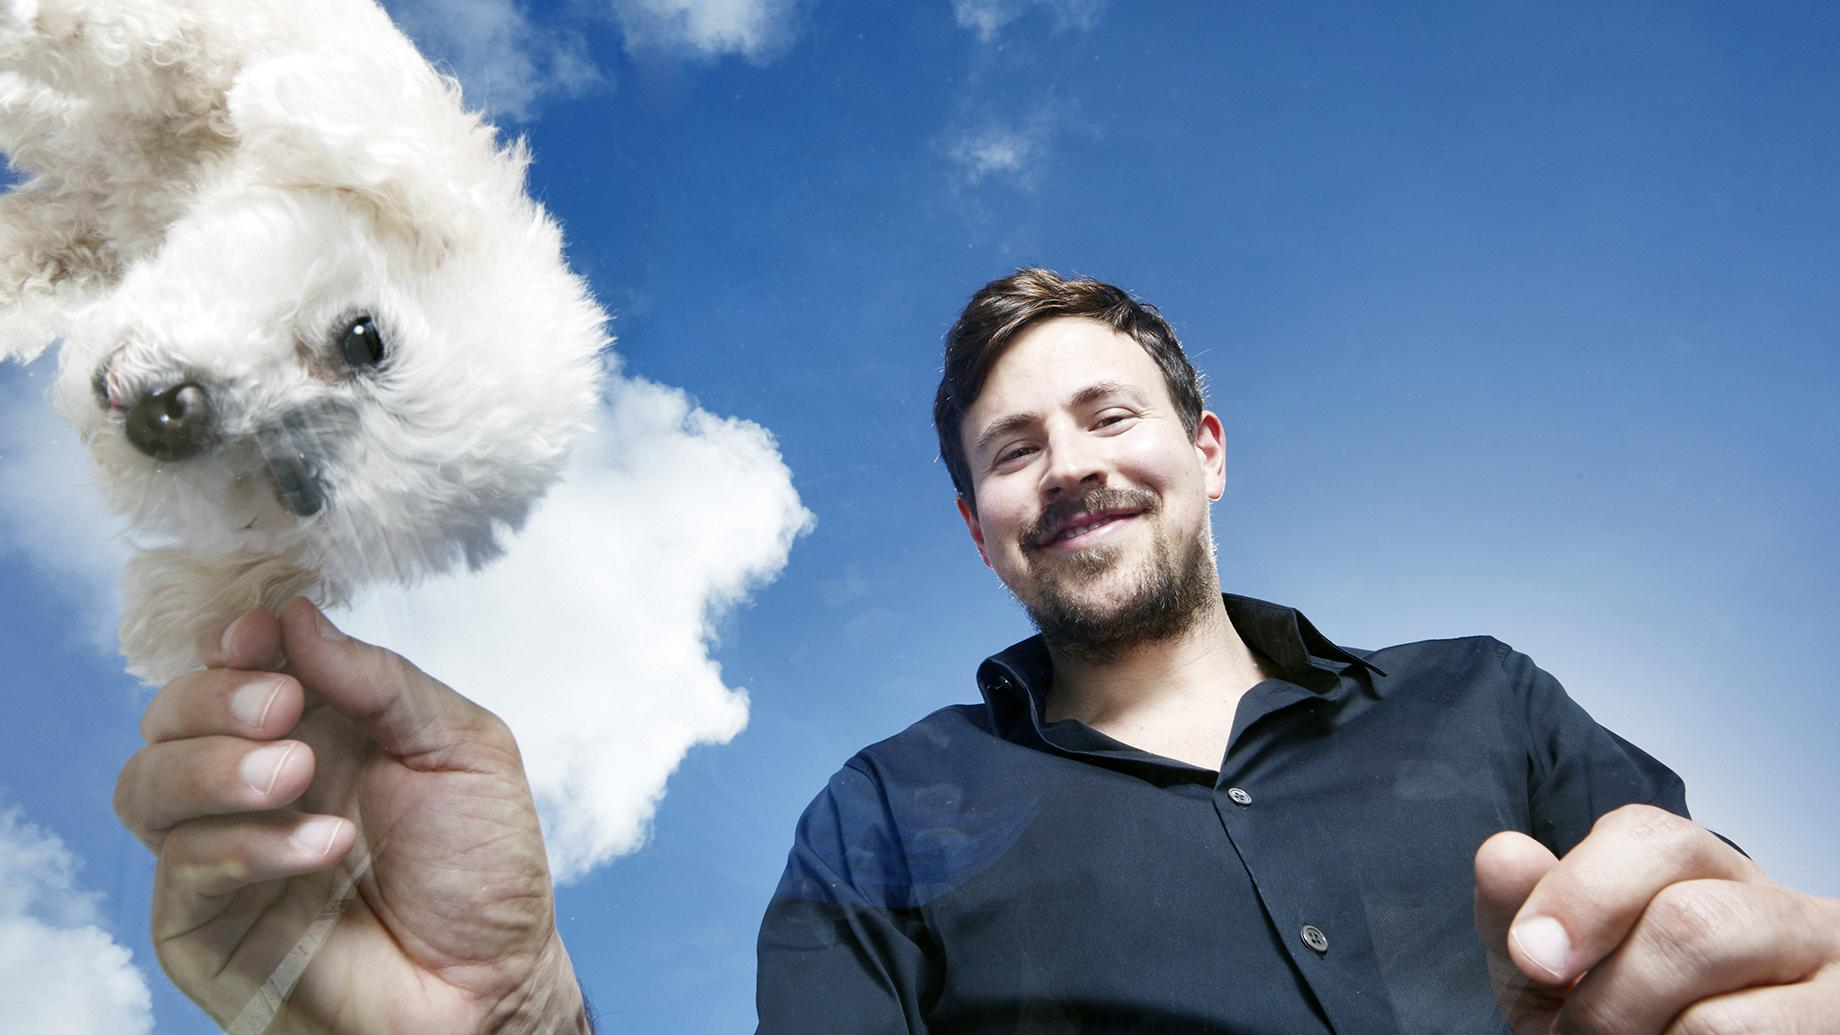 Ryan Cohen plays with furry white dog. He's the Founder and former CEO of Chewy.